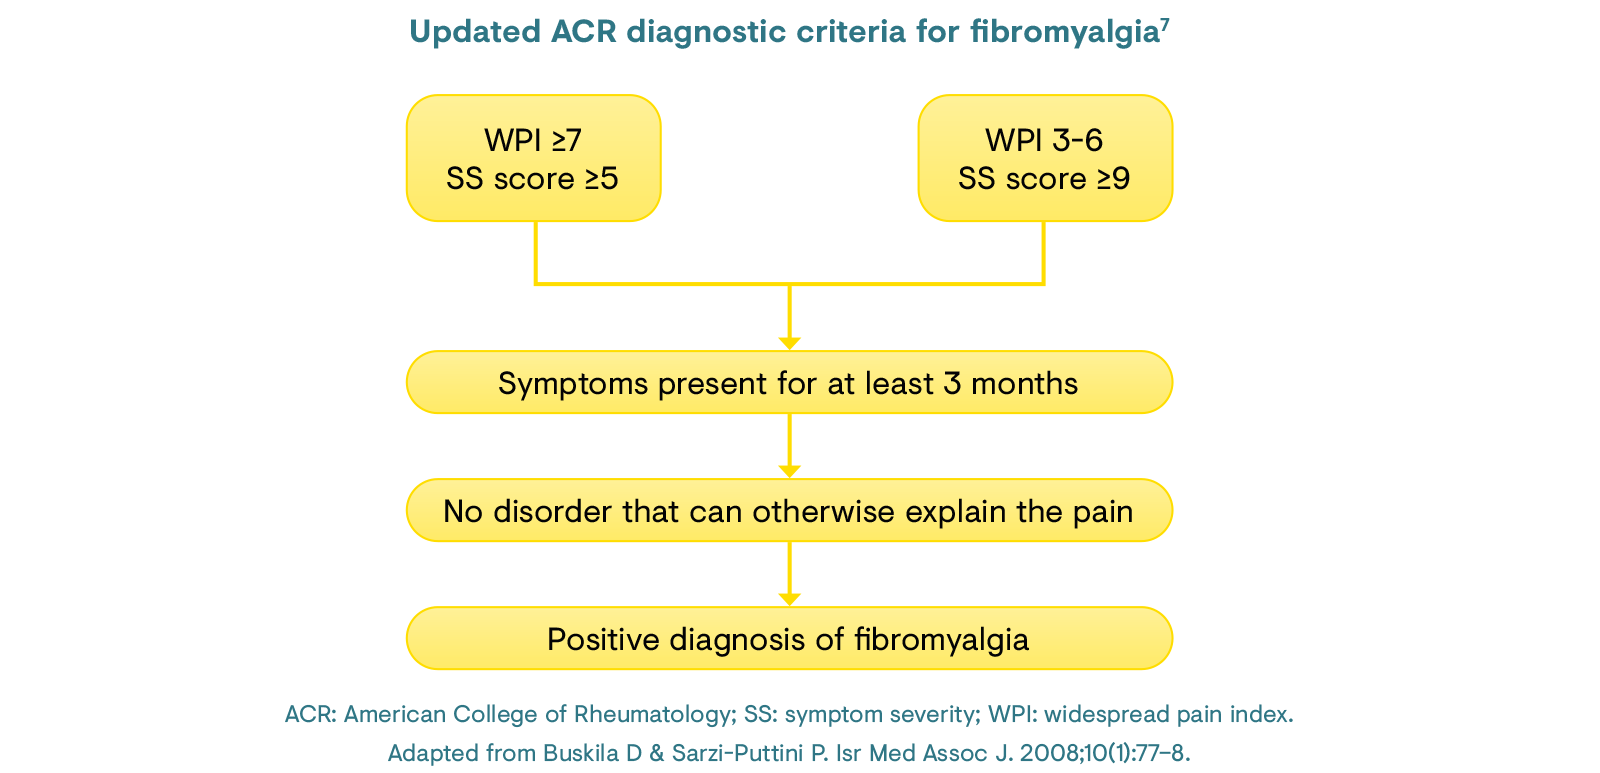 Updated ACR diagnostic criteria for fibromyalgia